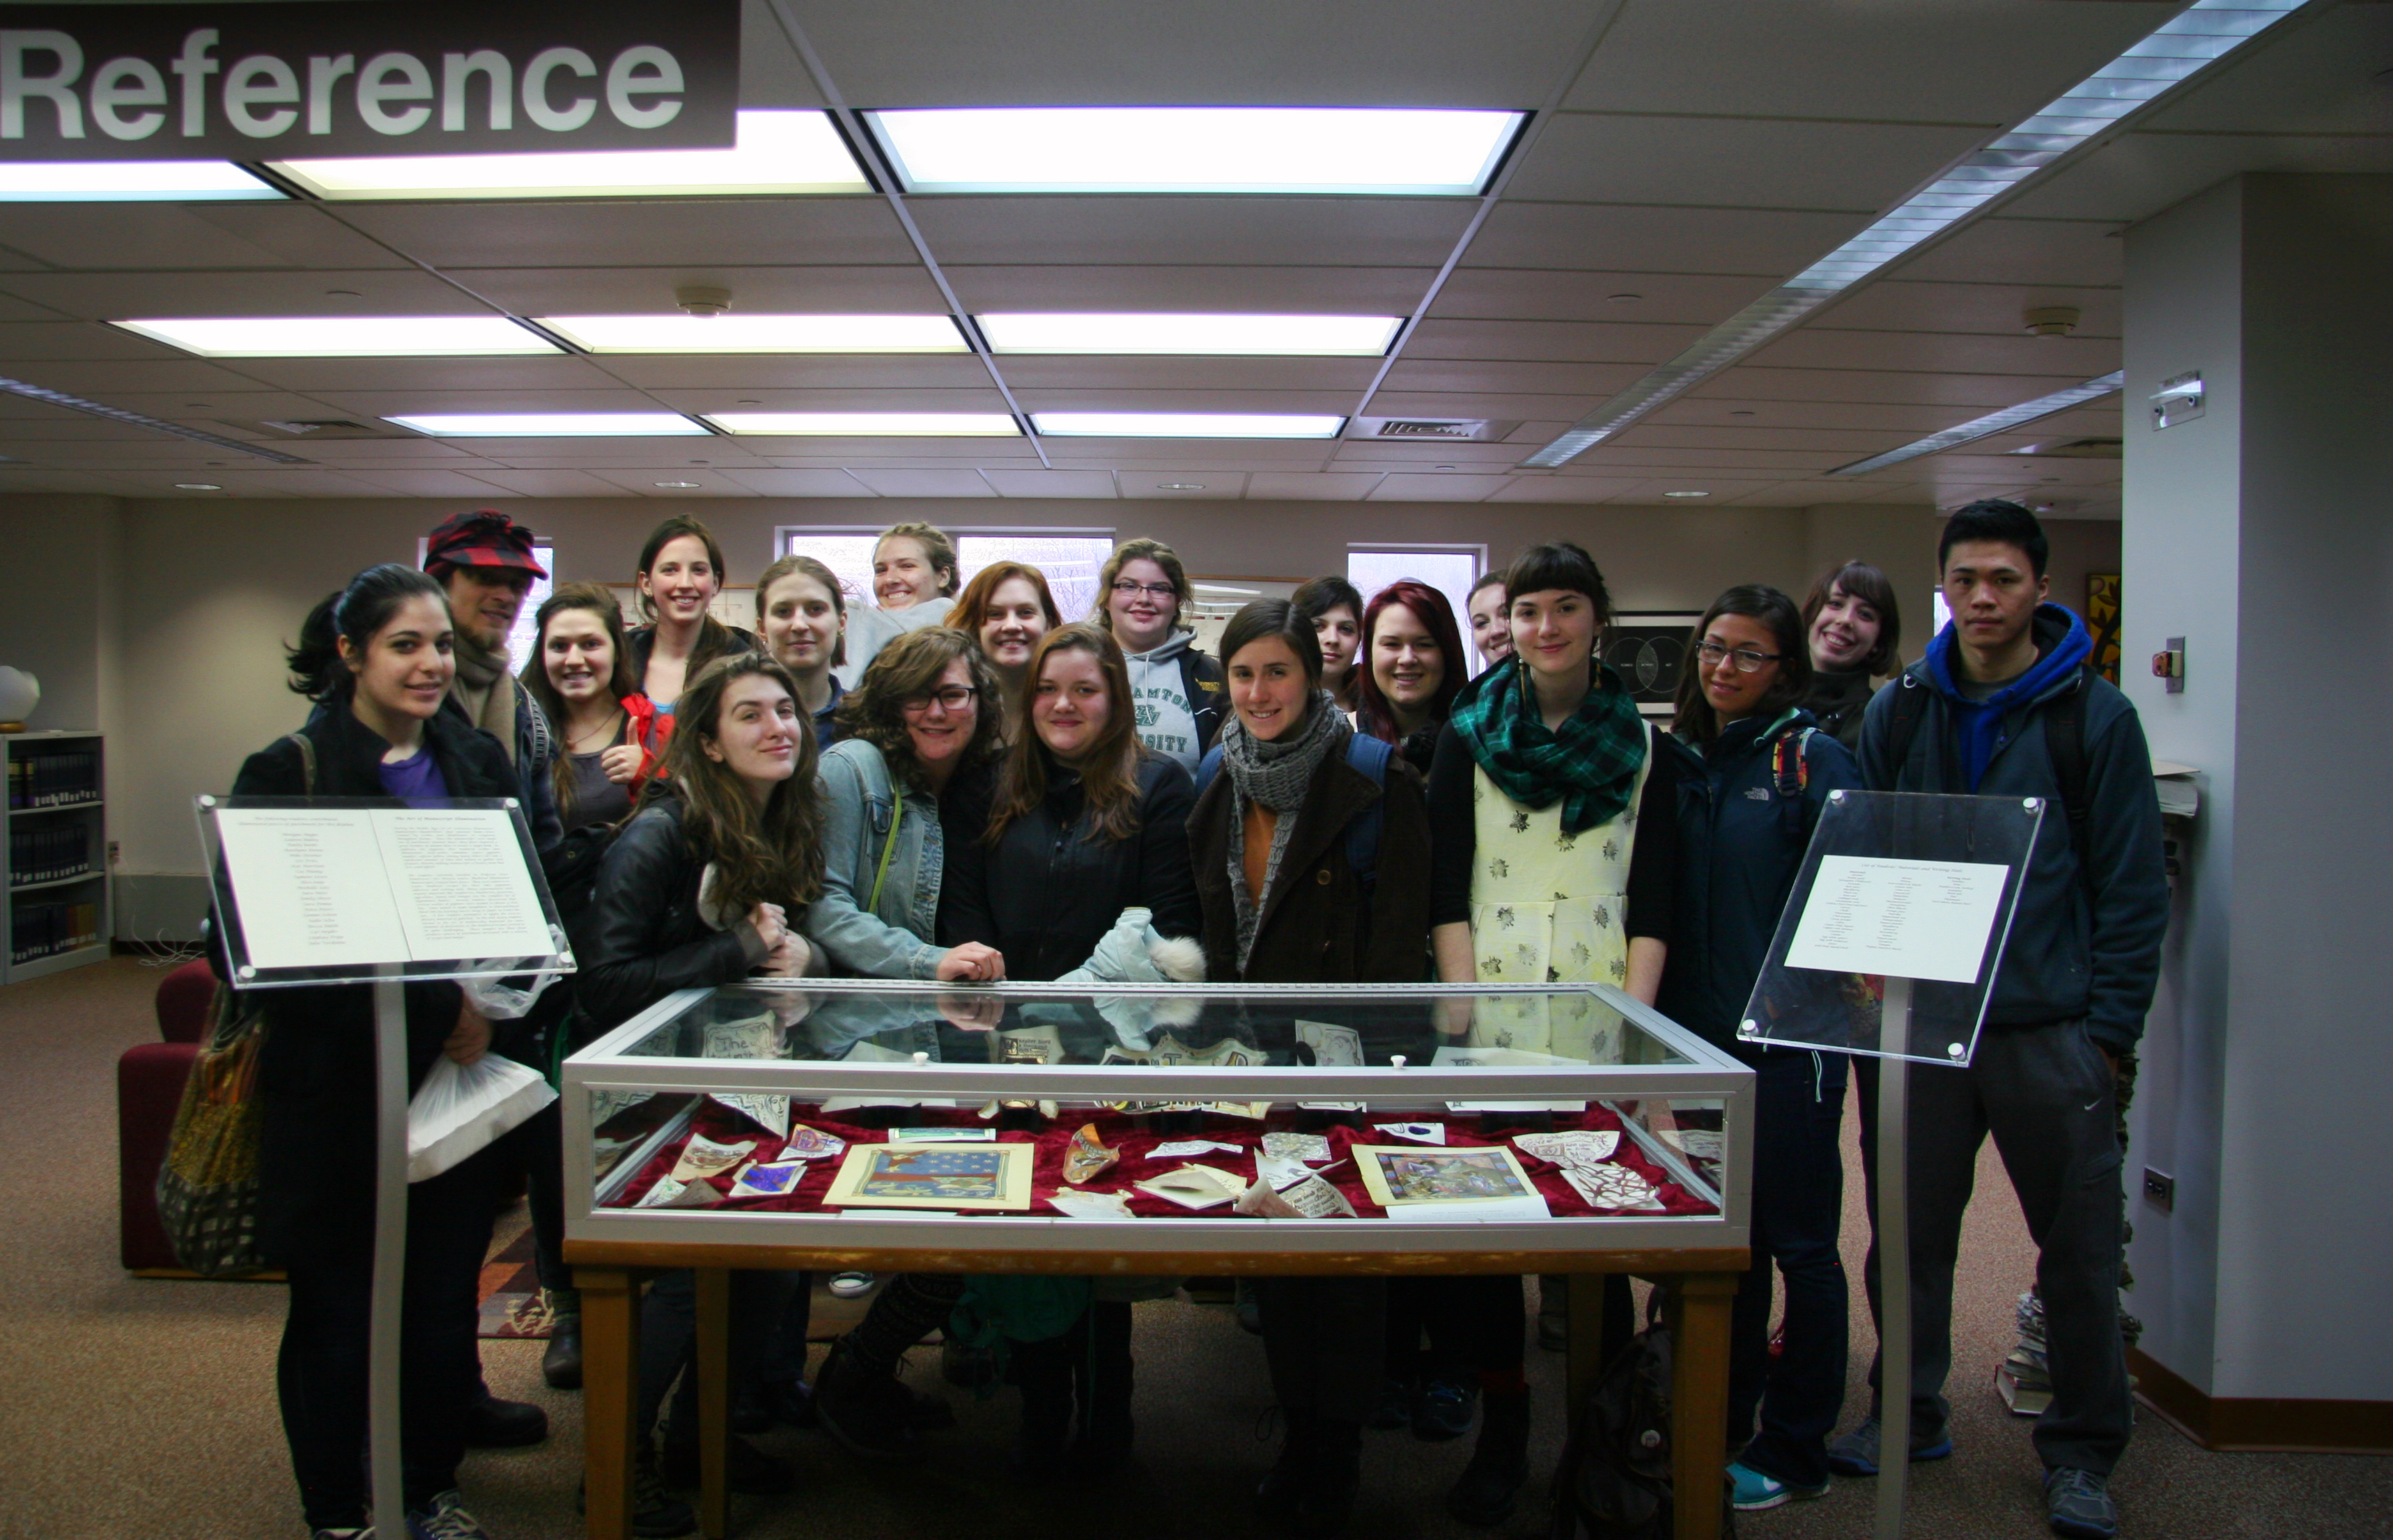 The full group with their works on display.